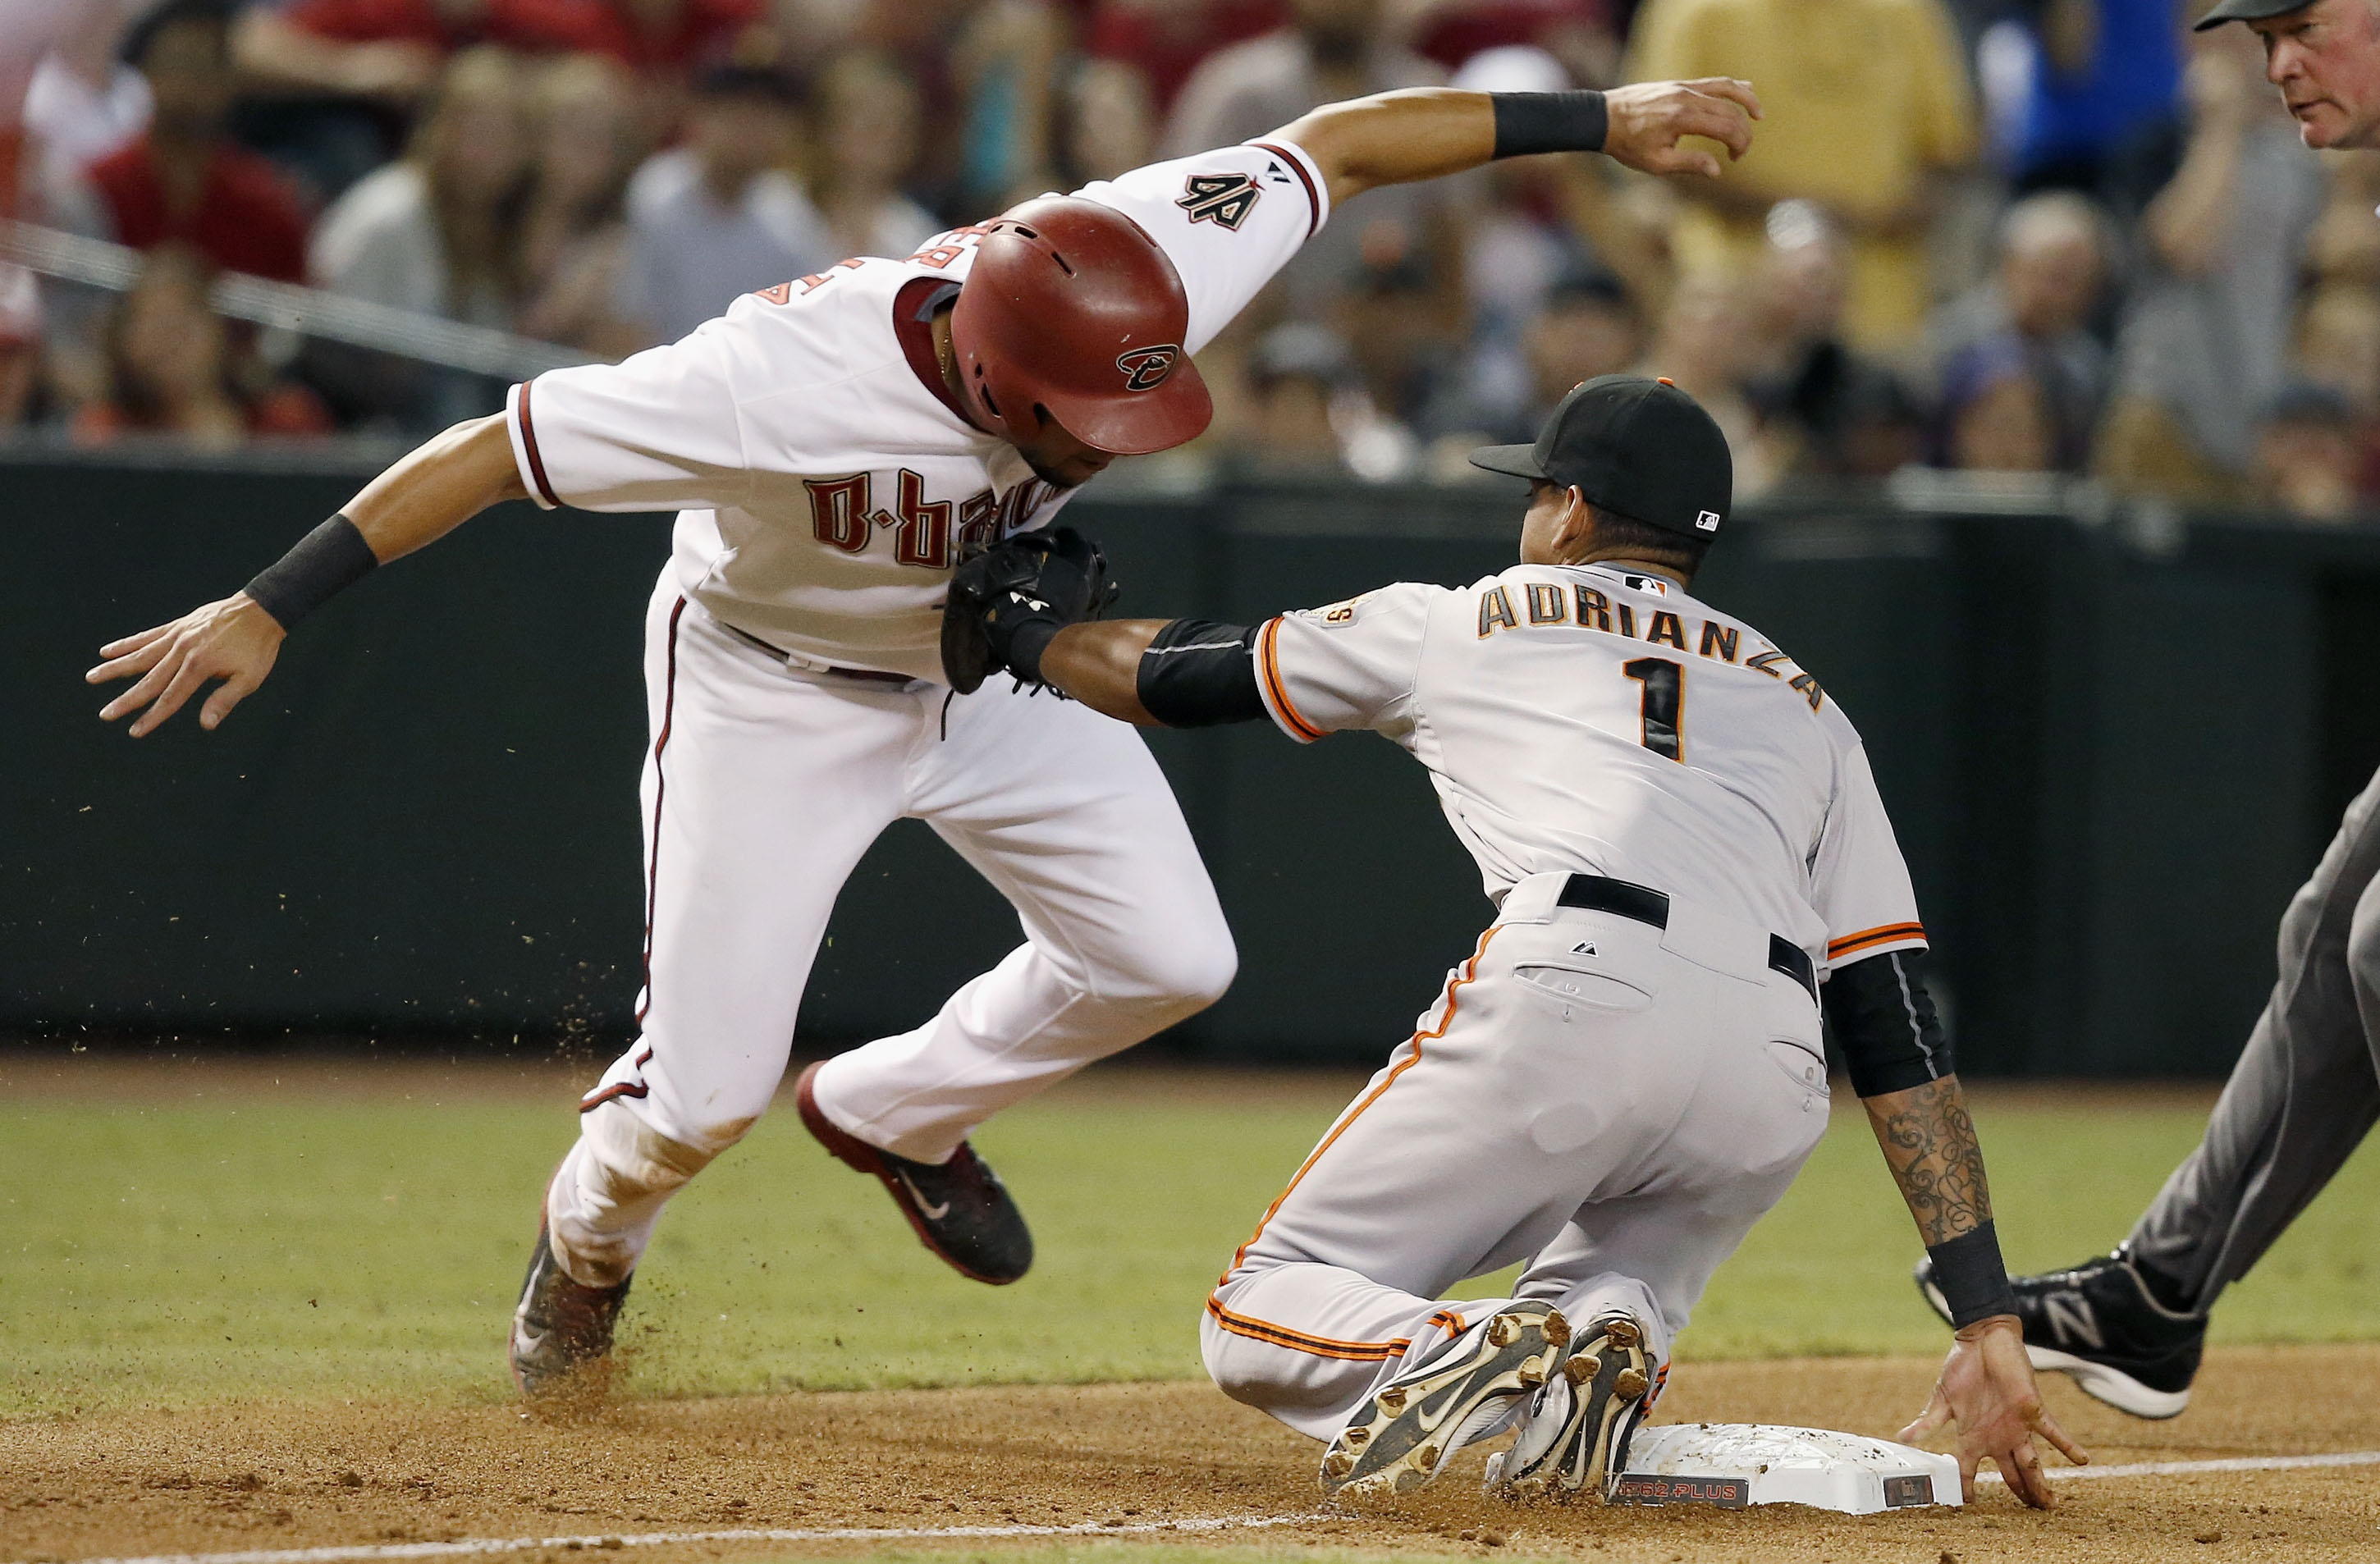 San Francisco Giants' Ehire Adrianza (1) tags Arizona Diamondbacks' David Peralta, left, out at third base during the fourth inning of a baseball game Tuesday, Sept. 8, 2015, in Phoenix. (AP Photo/Ross D. Franklin)